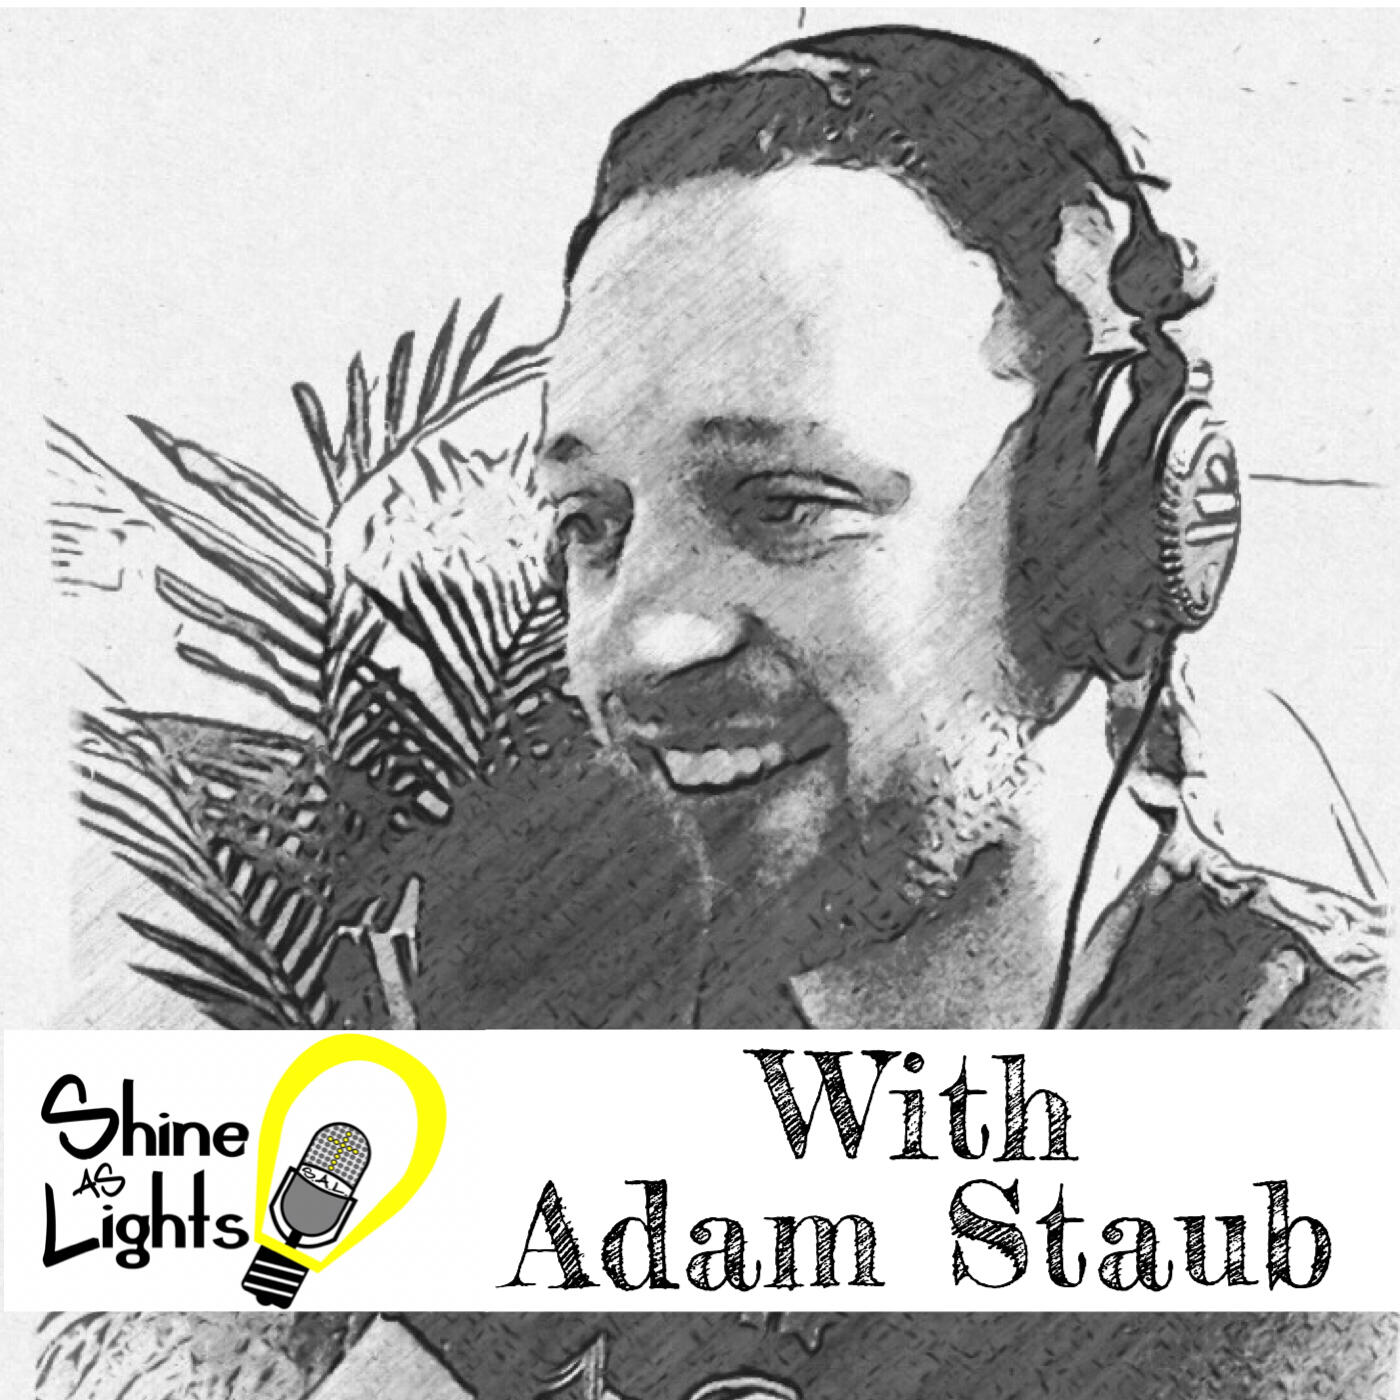 Listen To The Shine As Lights Episode Sal 98 Something New